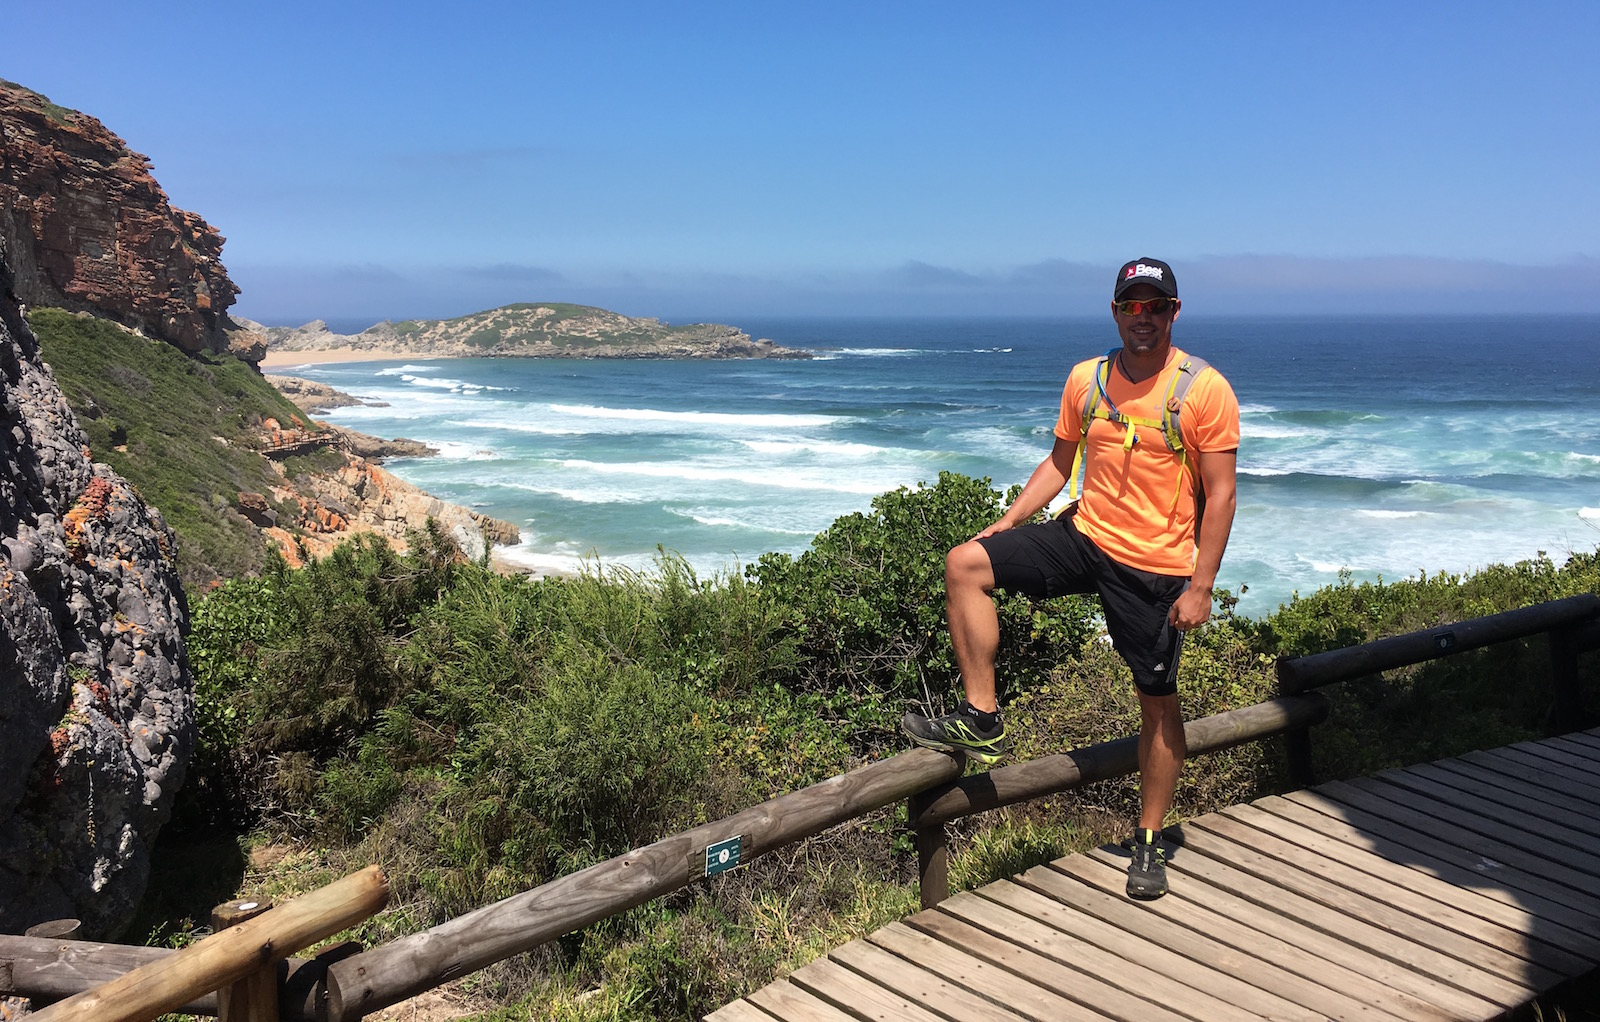 The Garden Route. One of the most beautiful and scenic areas in South Africa.